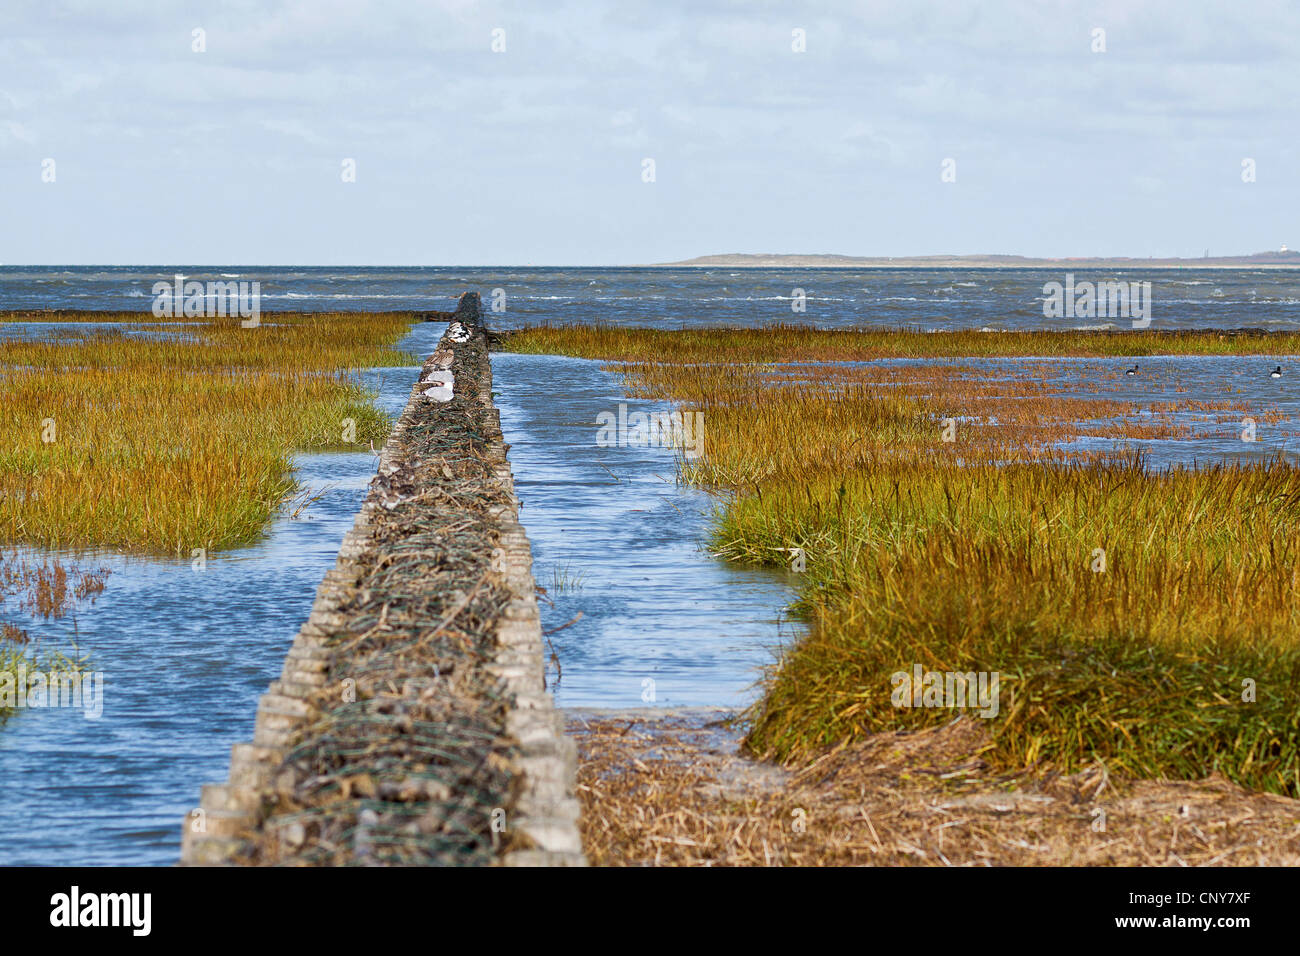 spur dike in the wadden sea, Germany, Lower Saxony, East Frisia, Dornumersiel - Stock Image